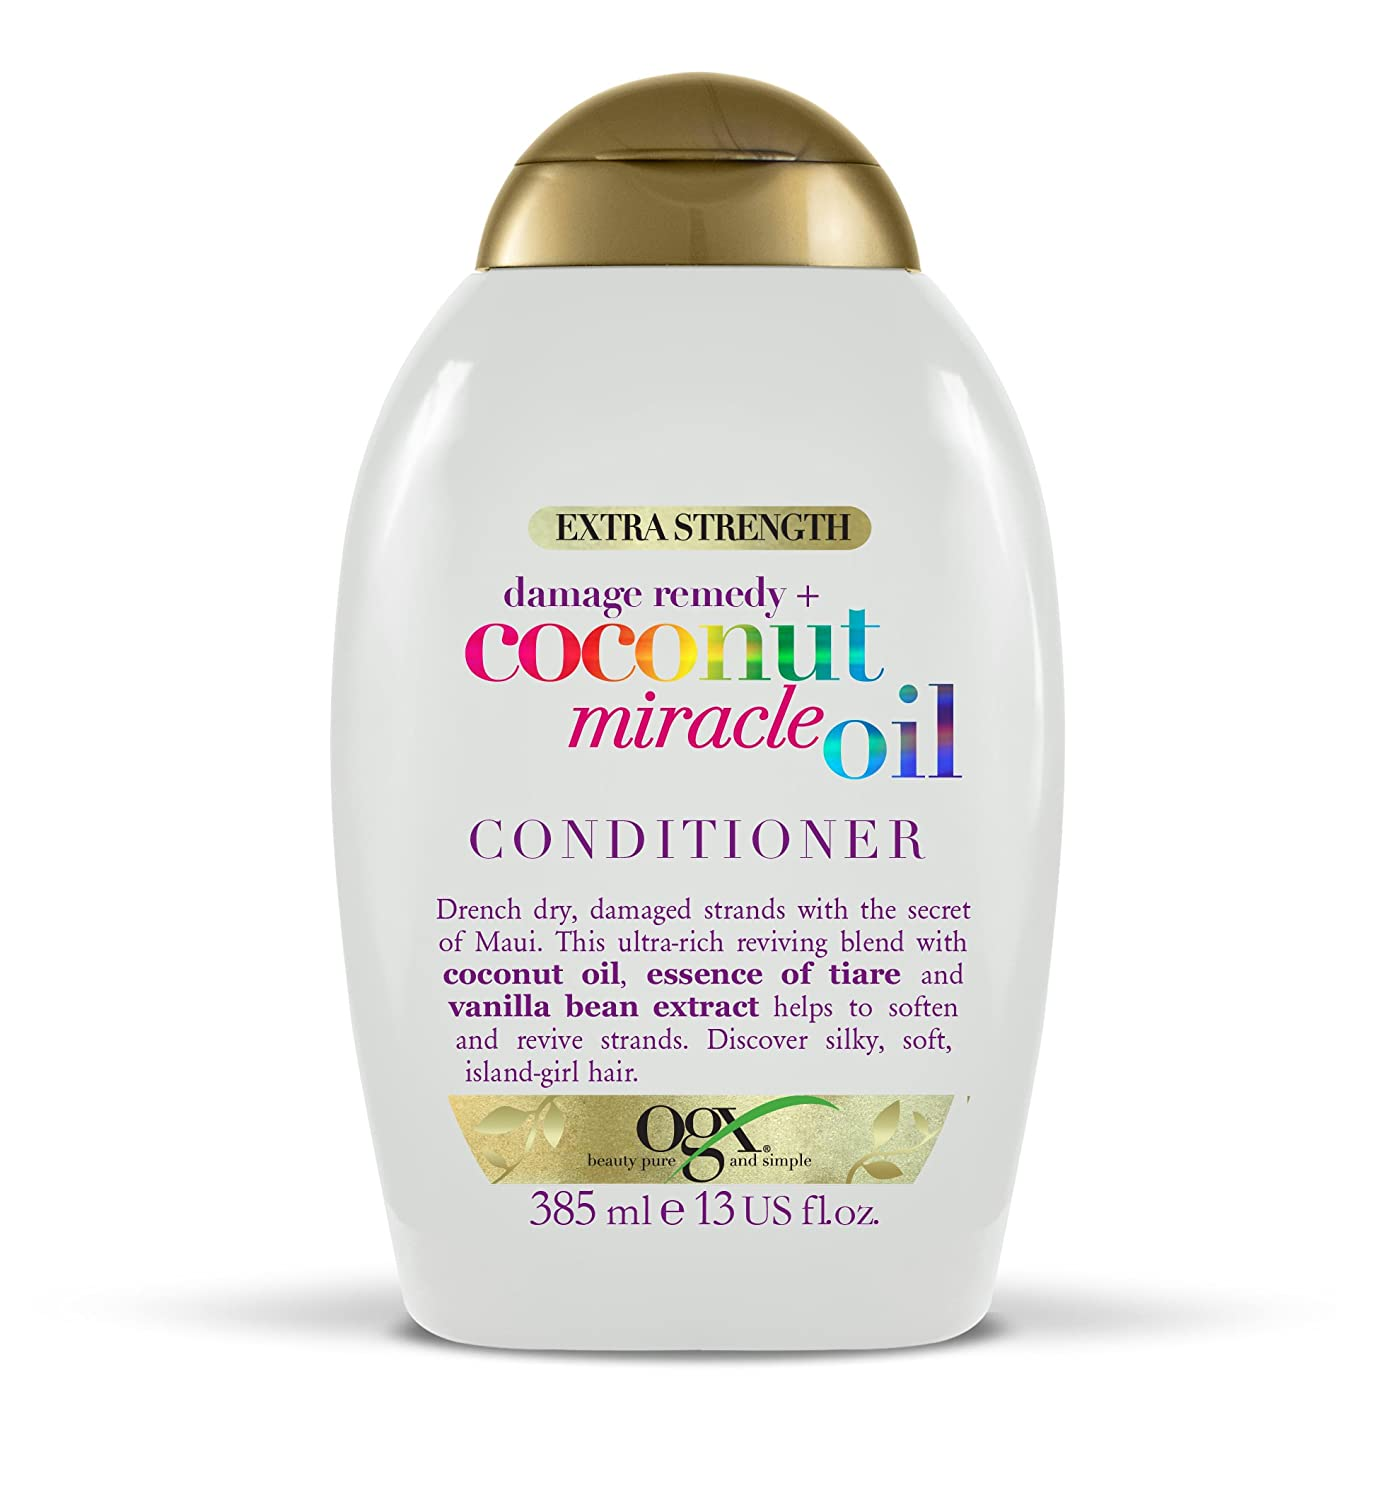 OGX Damage Remedy + Coconut Miracle Oil Conditioner 385 ml OGX BEAUTY 97221